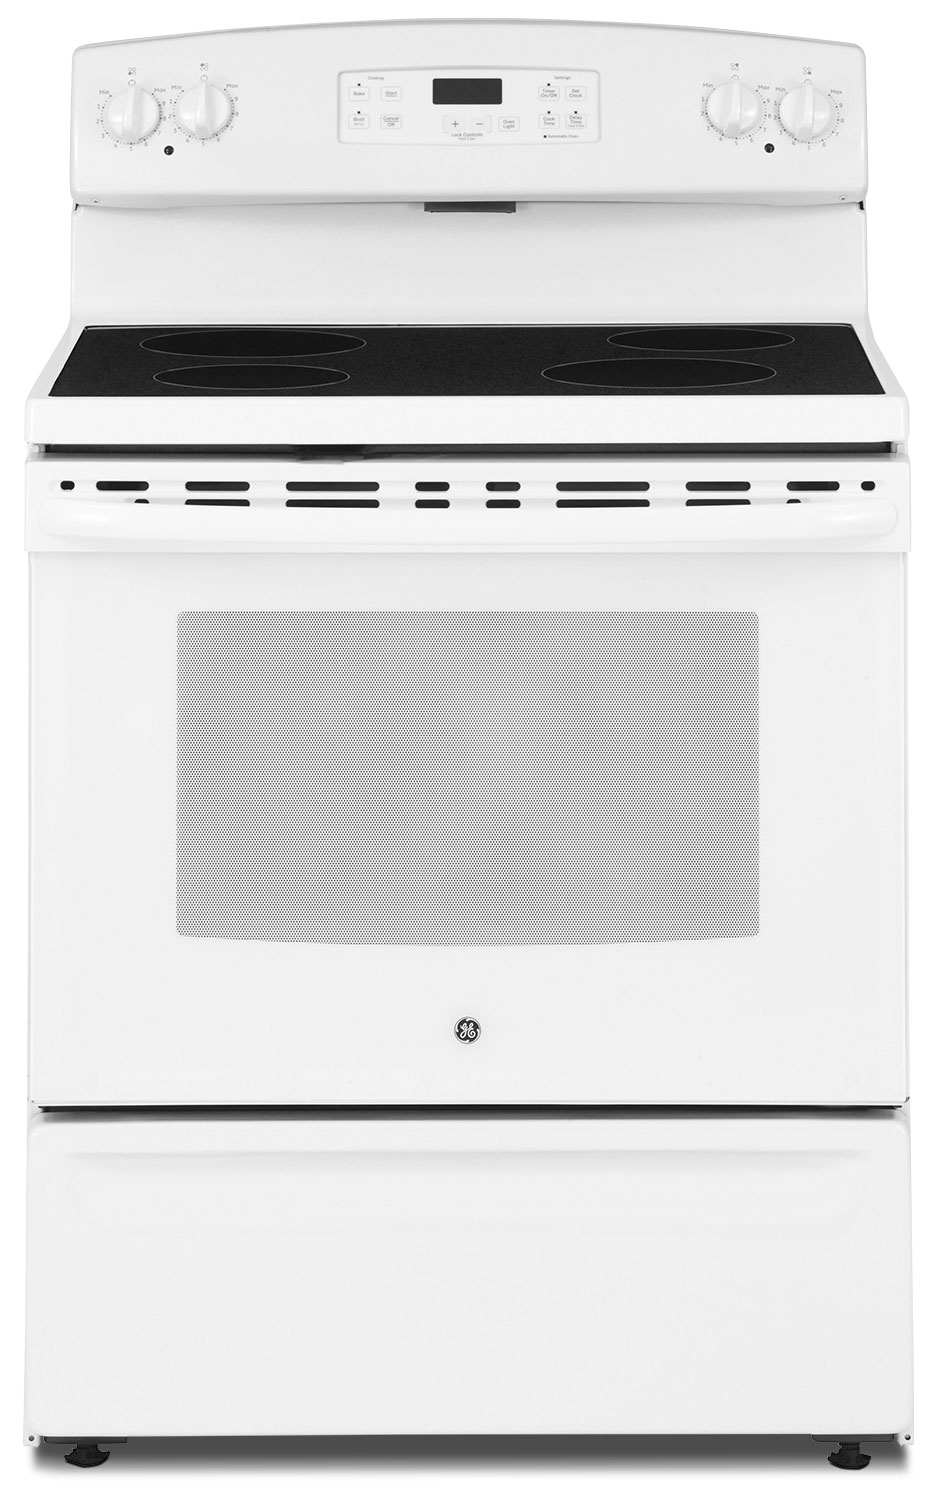 GE 5.0 Cu. Ft. Freestanding Electric Range – JCBS630DJWW